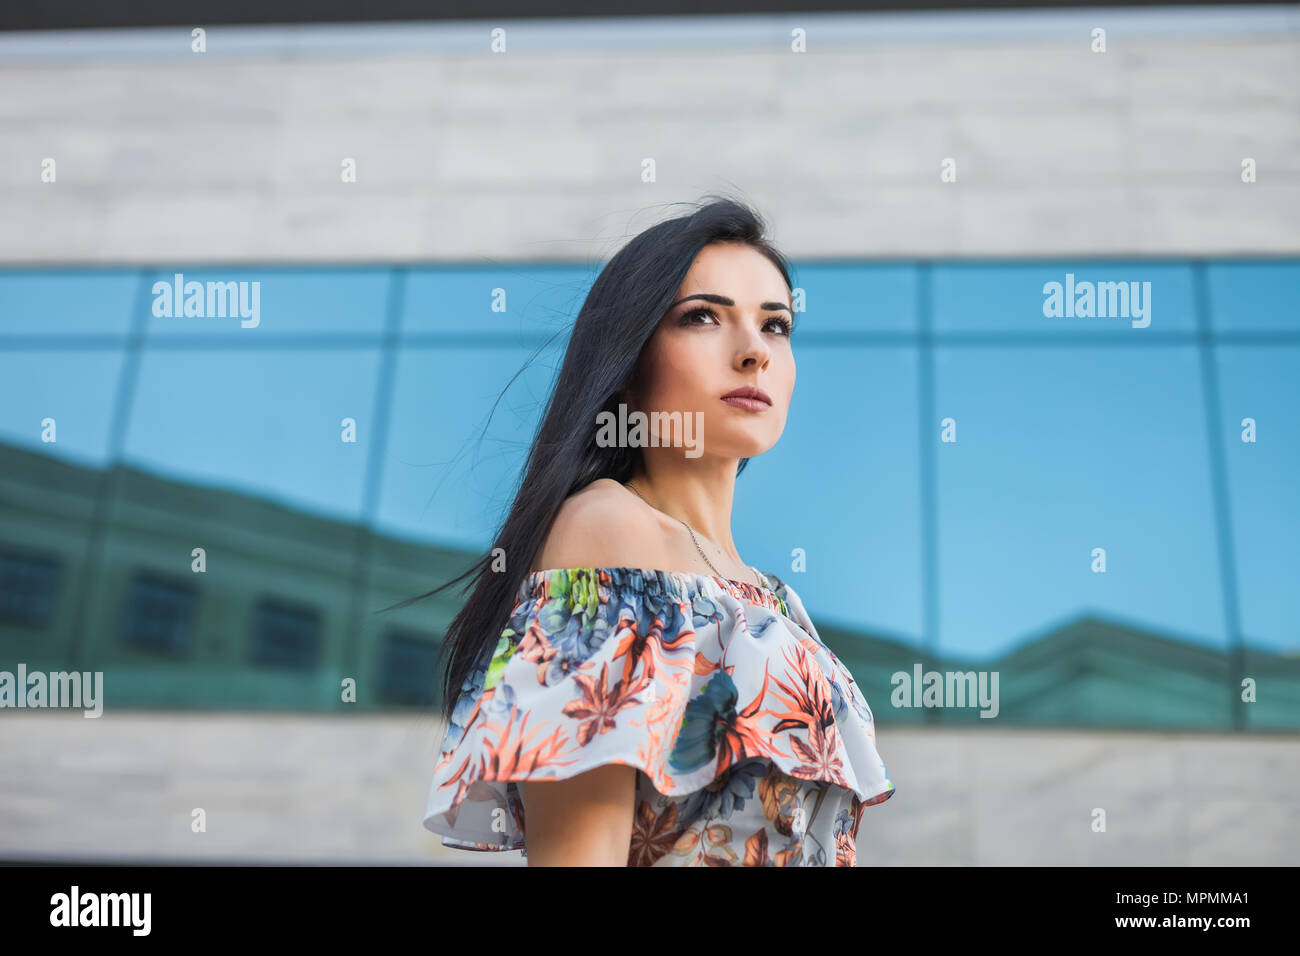 thoughtfull teen in the city - Stock Image